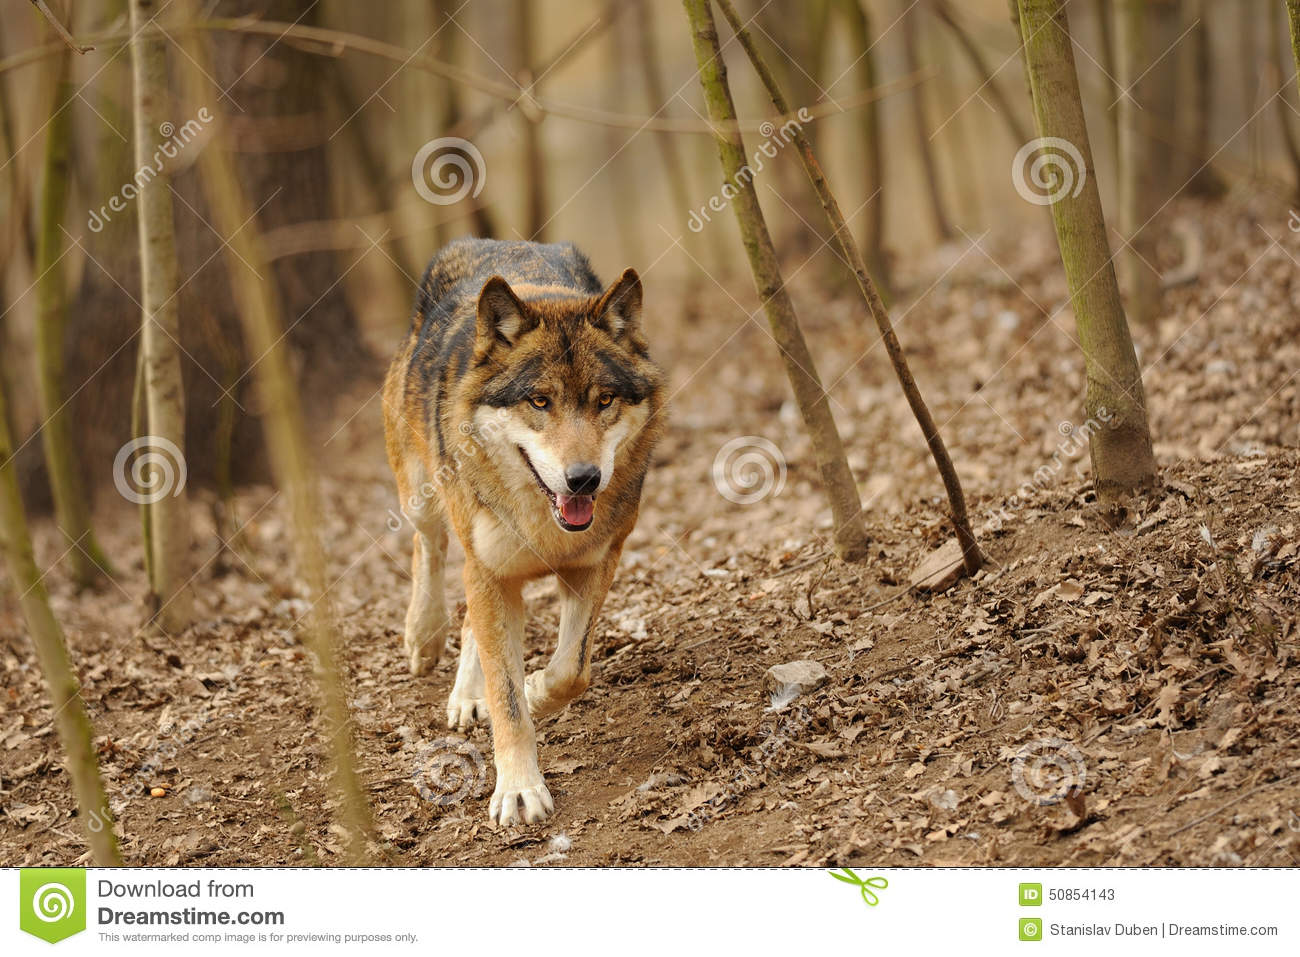 Running Wolf From The Front View Stock Image - Image: 50854143